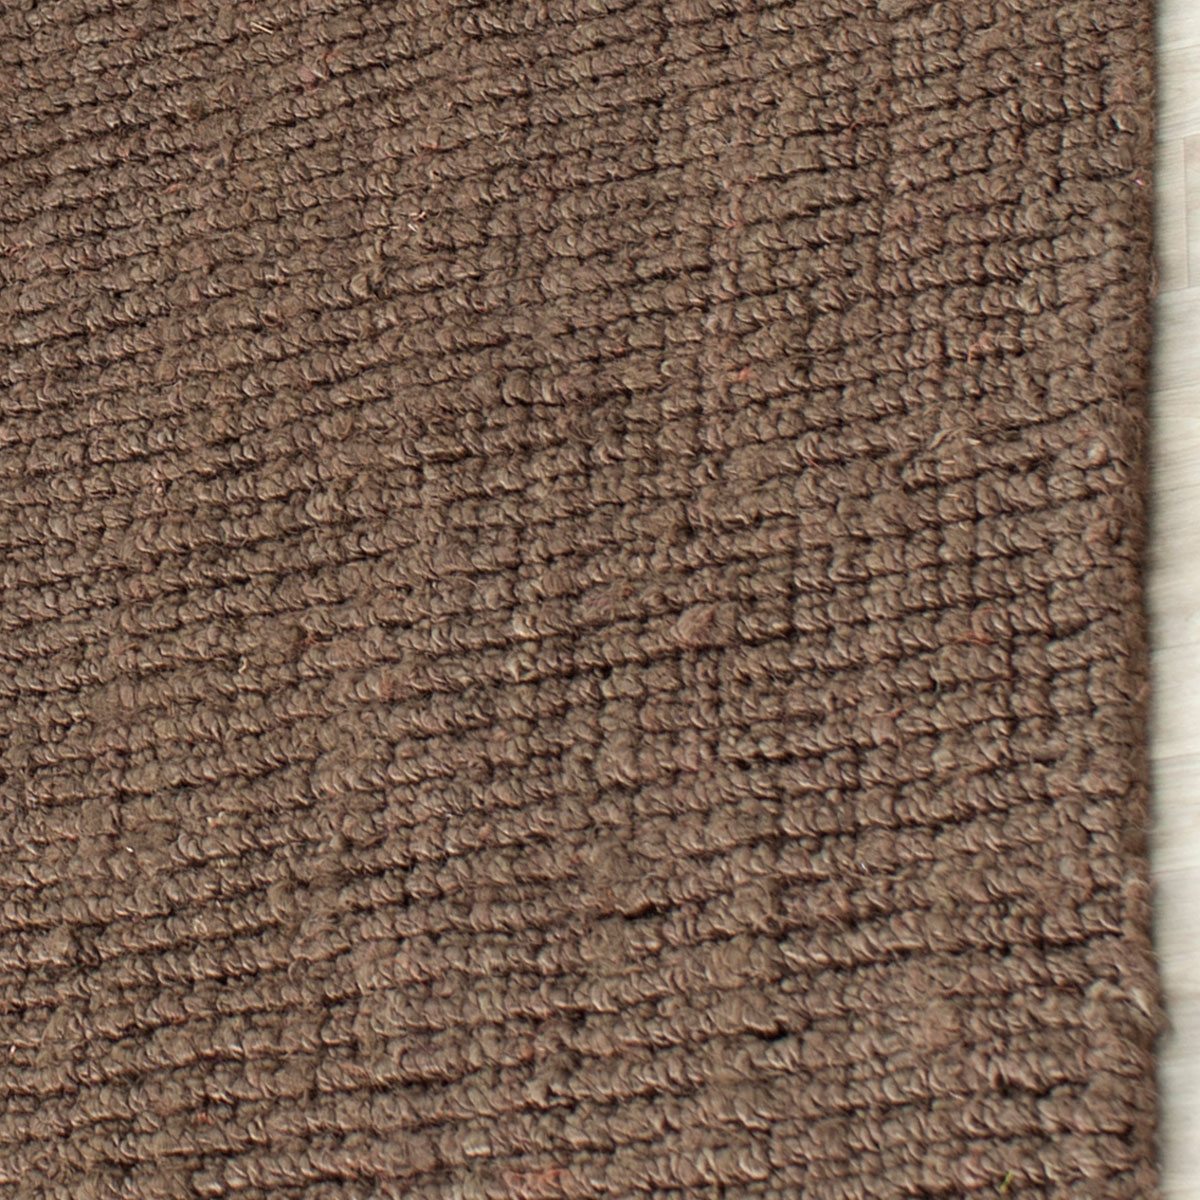 Rug Nf447d Natural Fiber Area Rugs By Safavieh